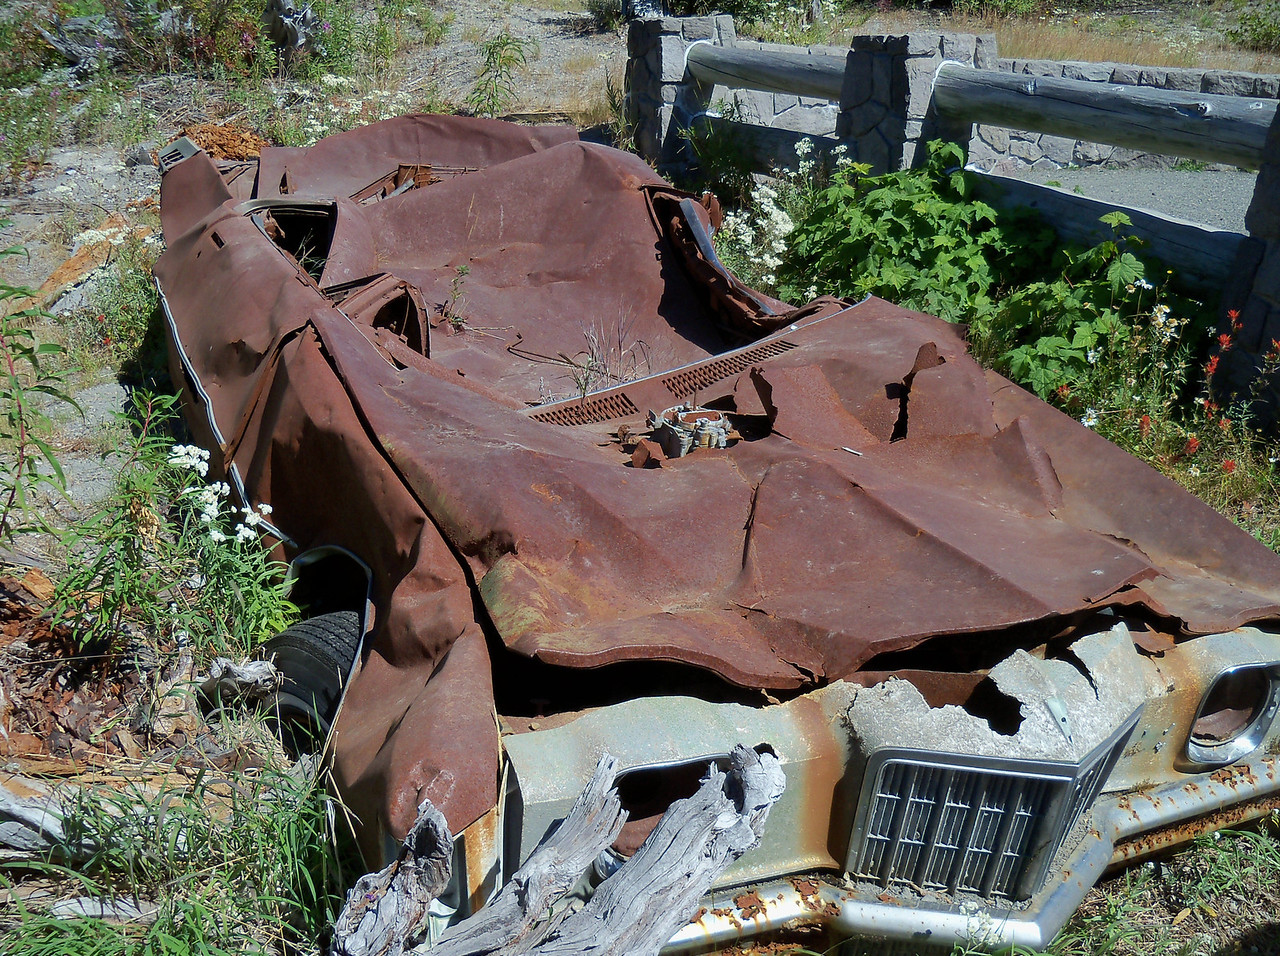 Remains of the Miner's car